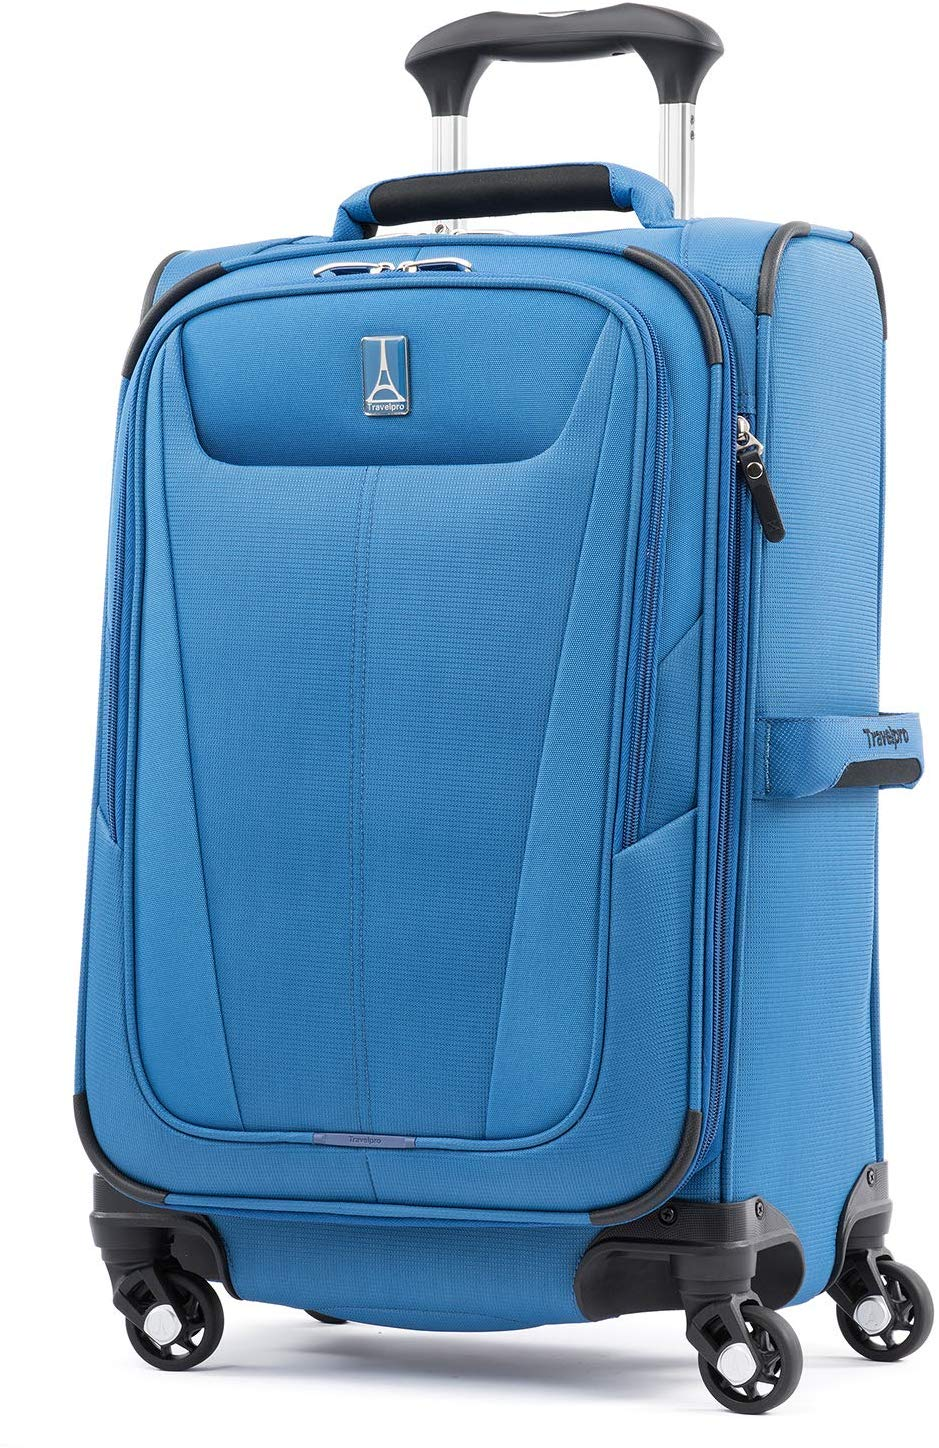 Travelpro Maxlite Expandable Carry-On Suitcase, 21-Inch